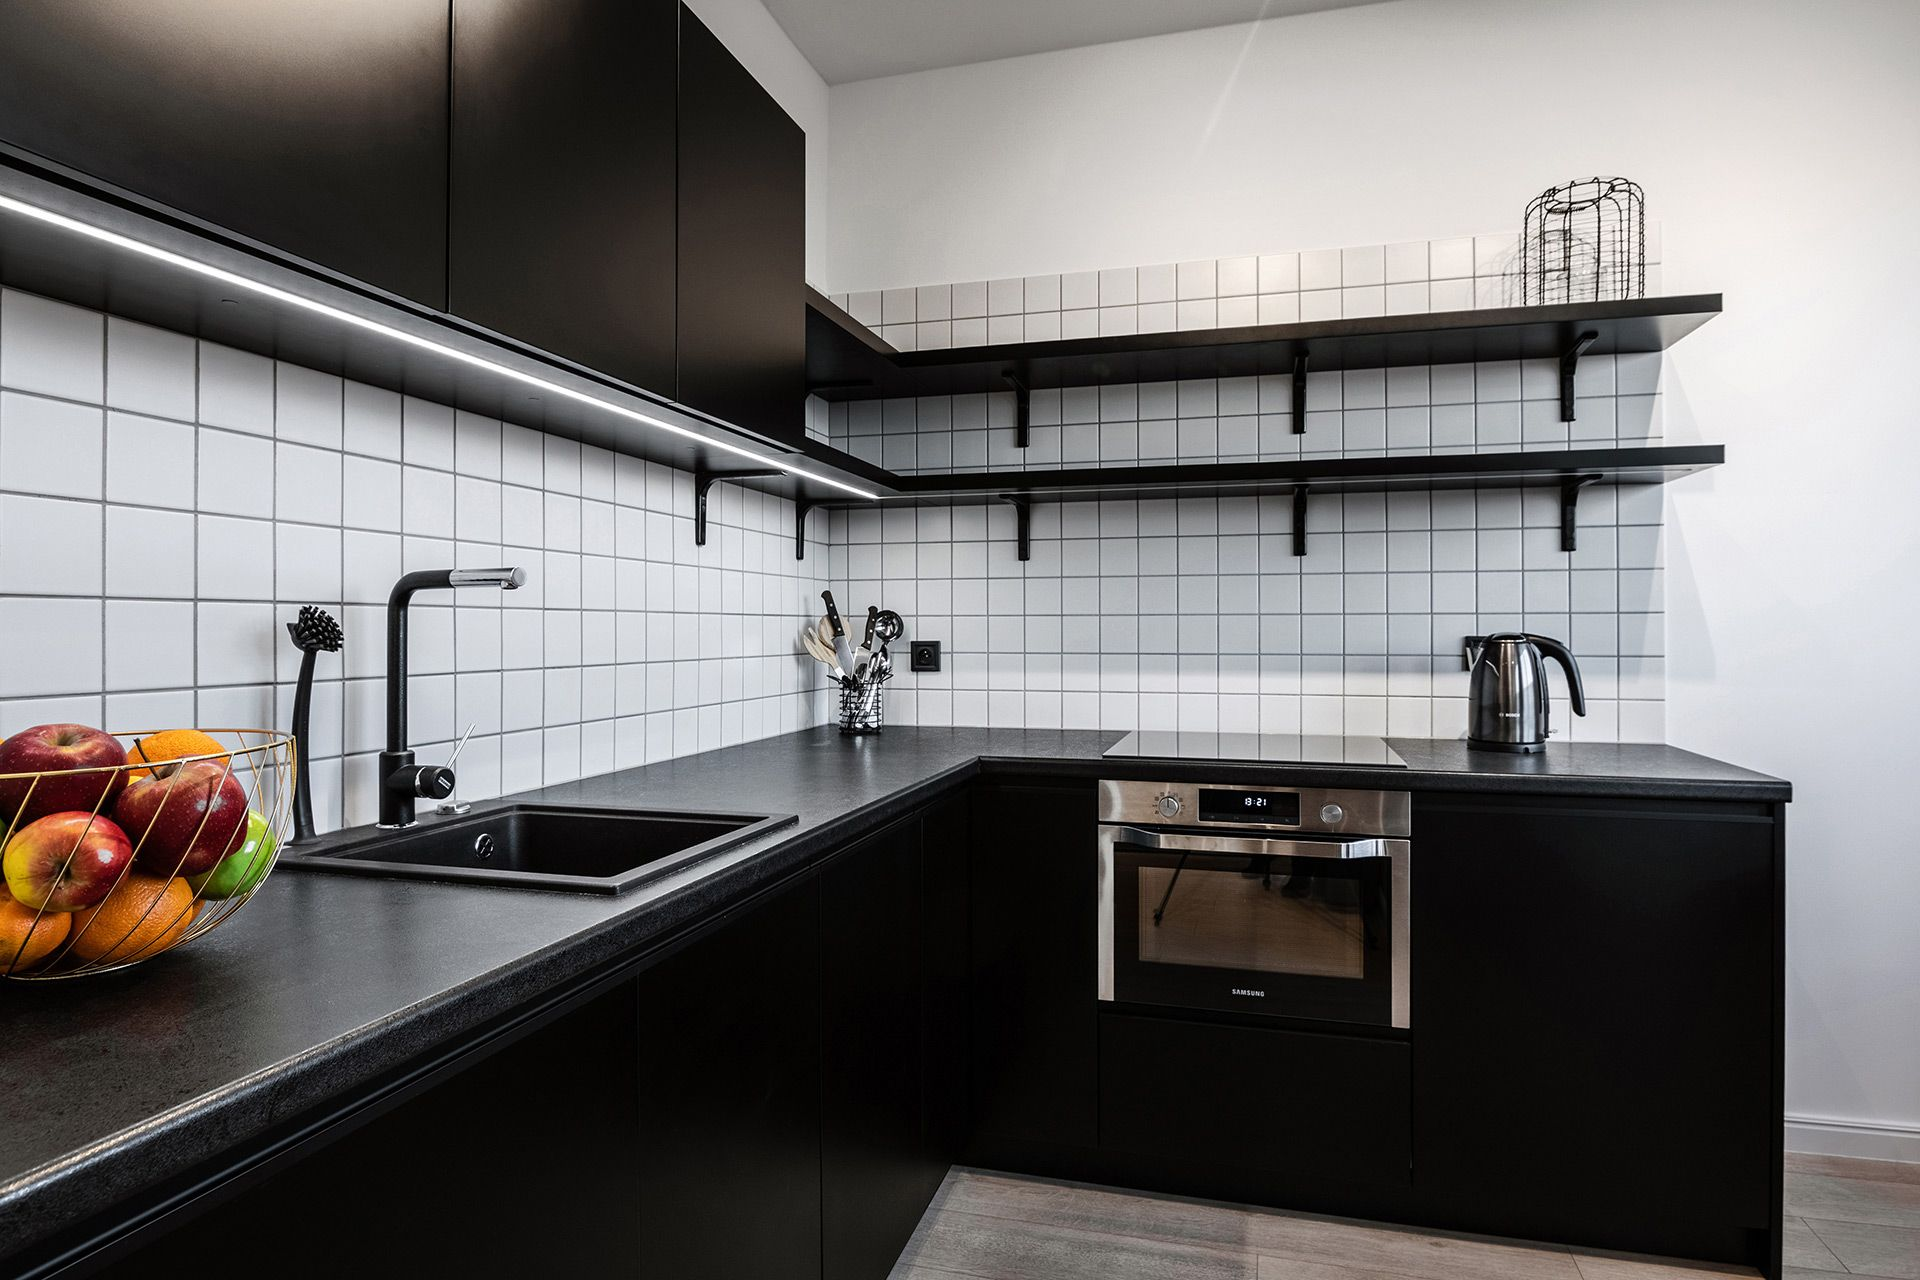 Studio - Large apartment to rent in Warsaw UPR-A-069-2